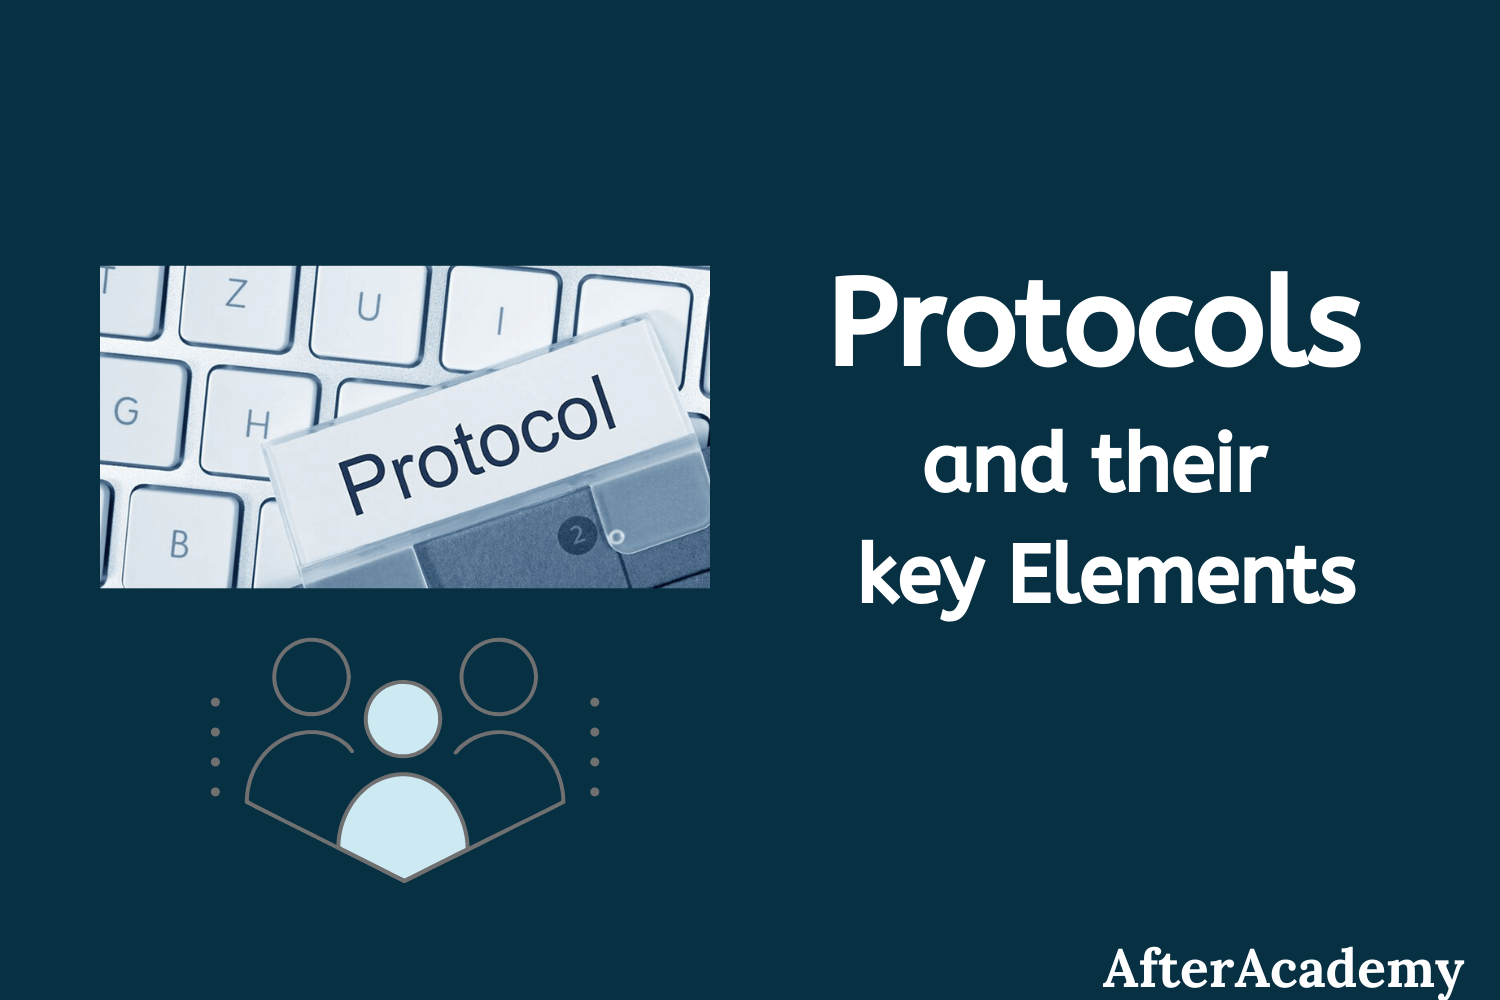 What are Protocols and what are the key elements of protocols?